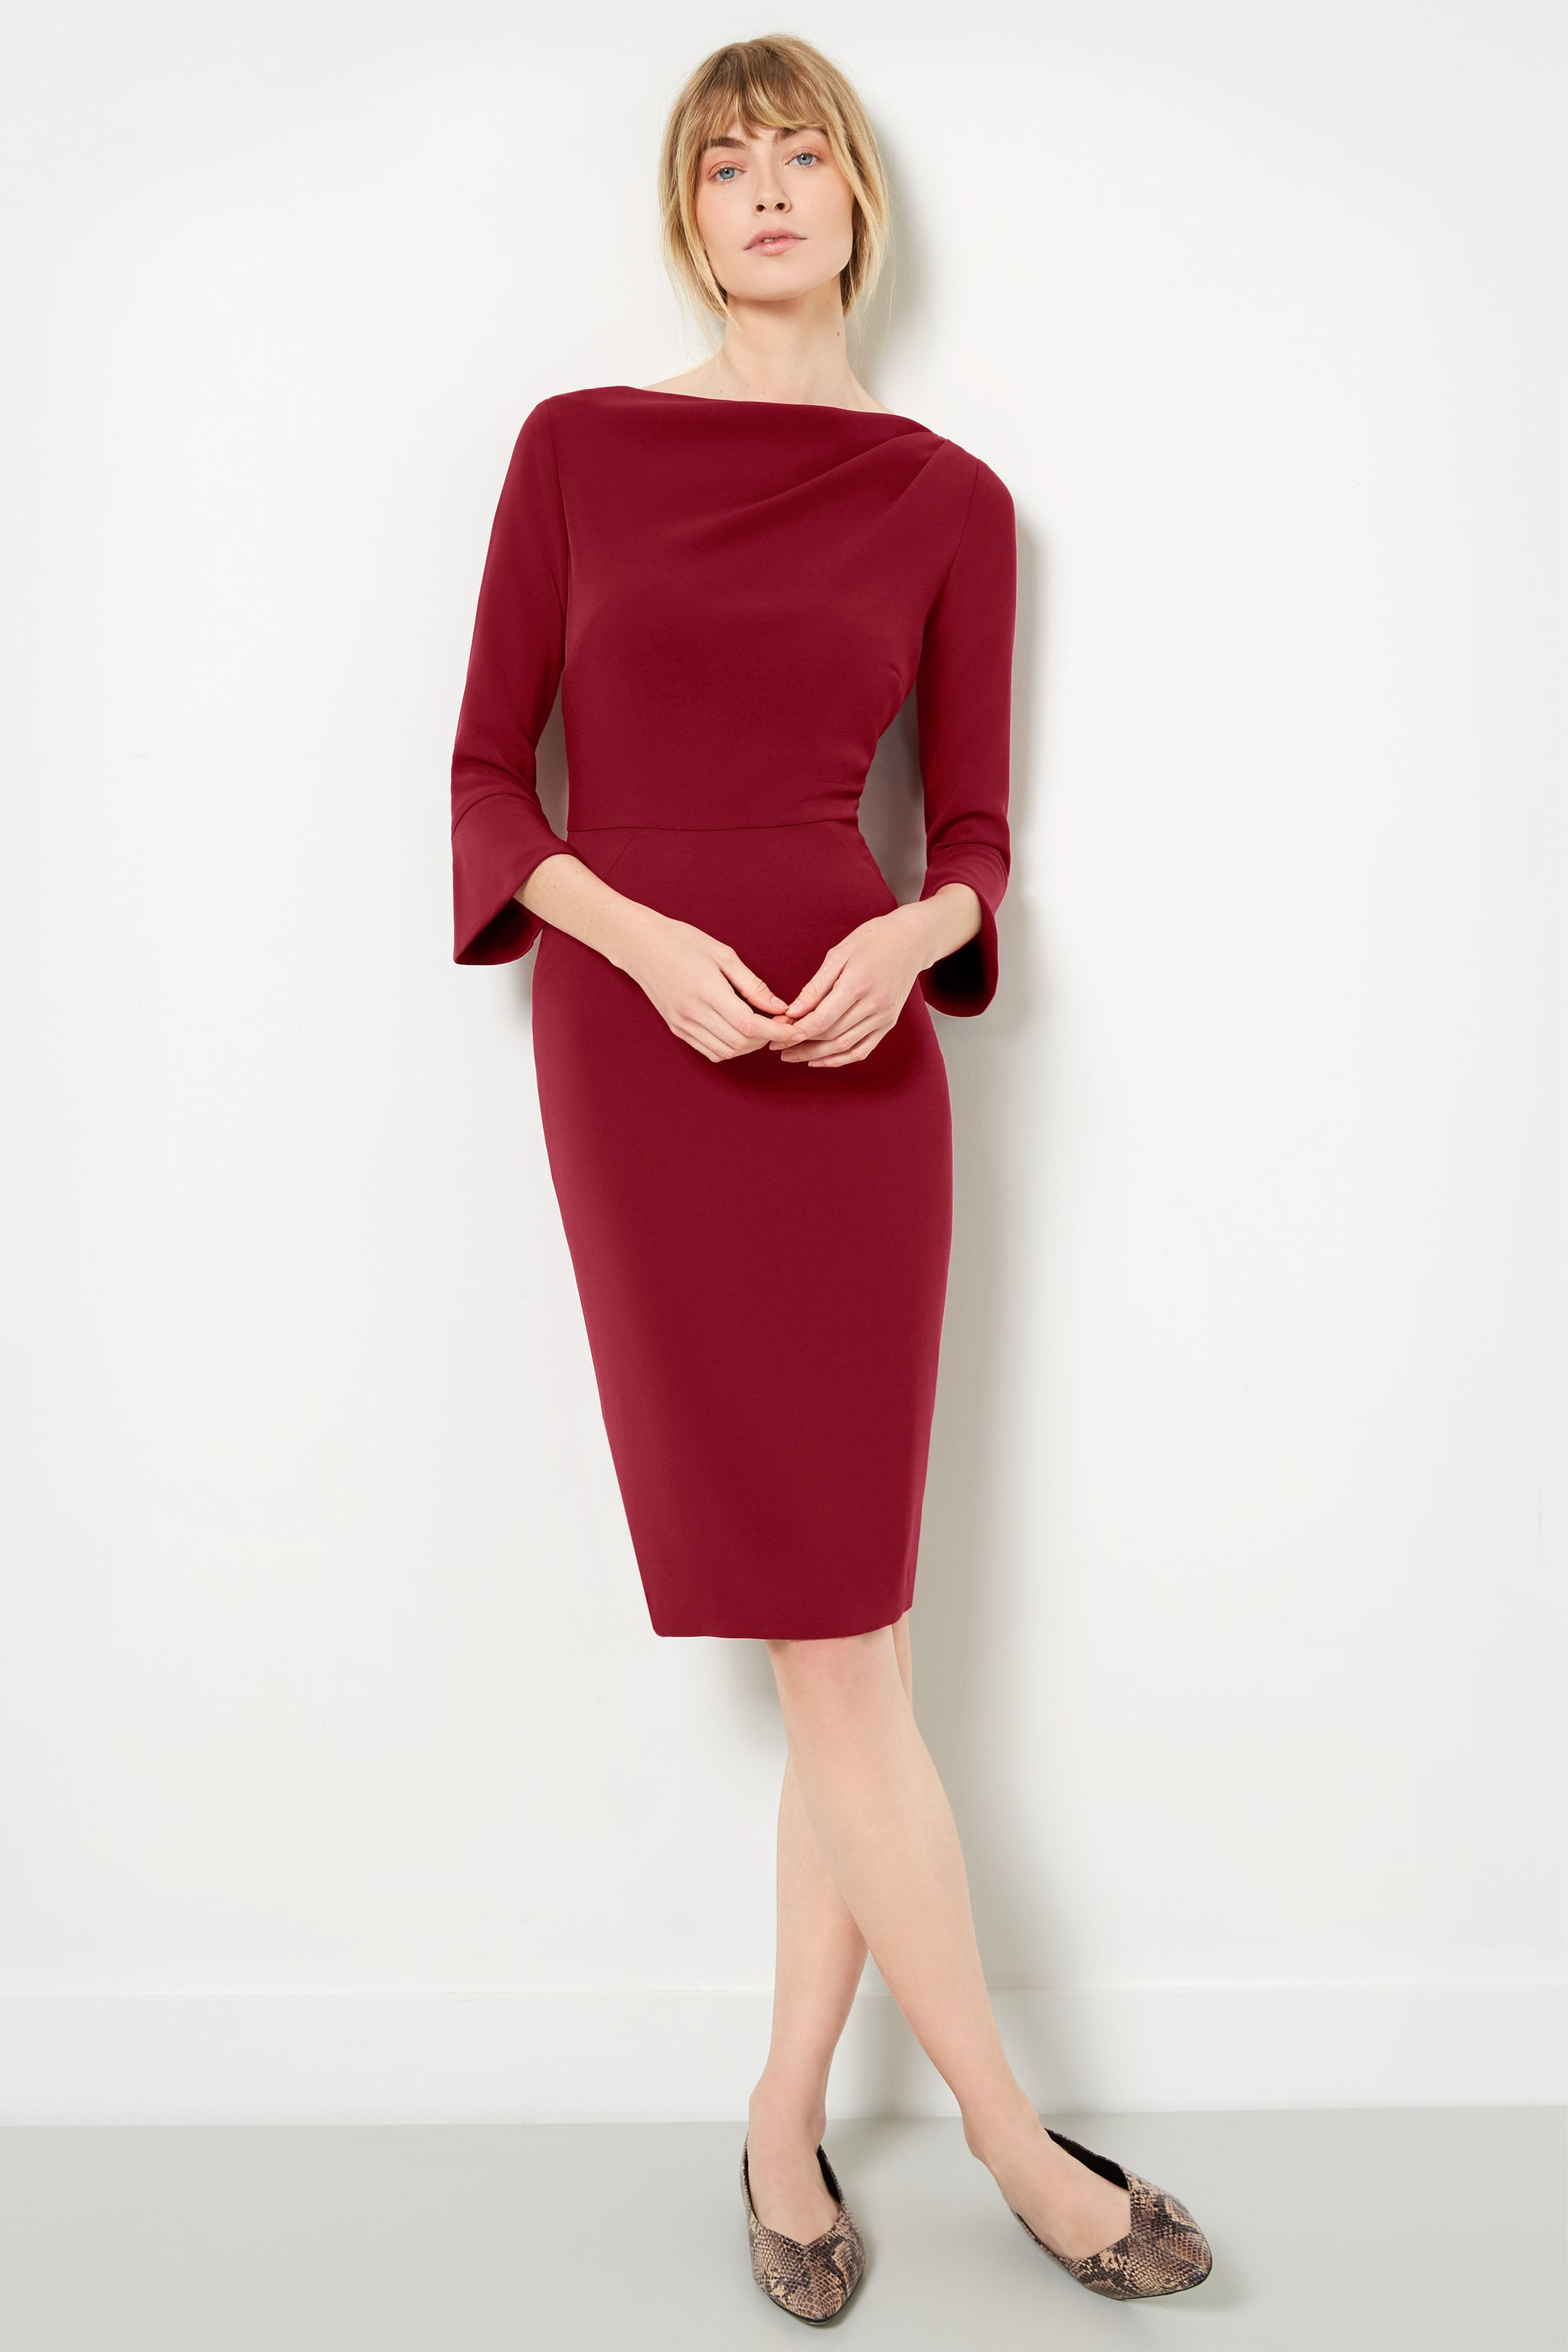 Serpentine Cabernet Dress